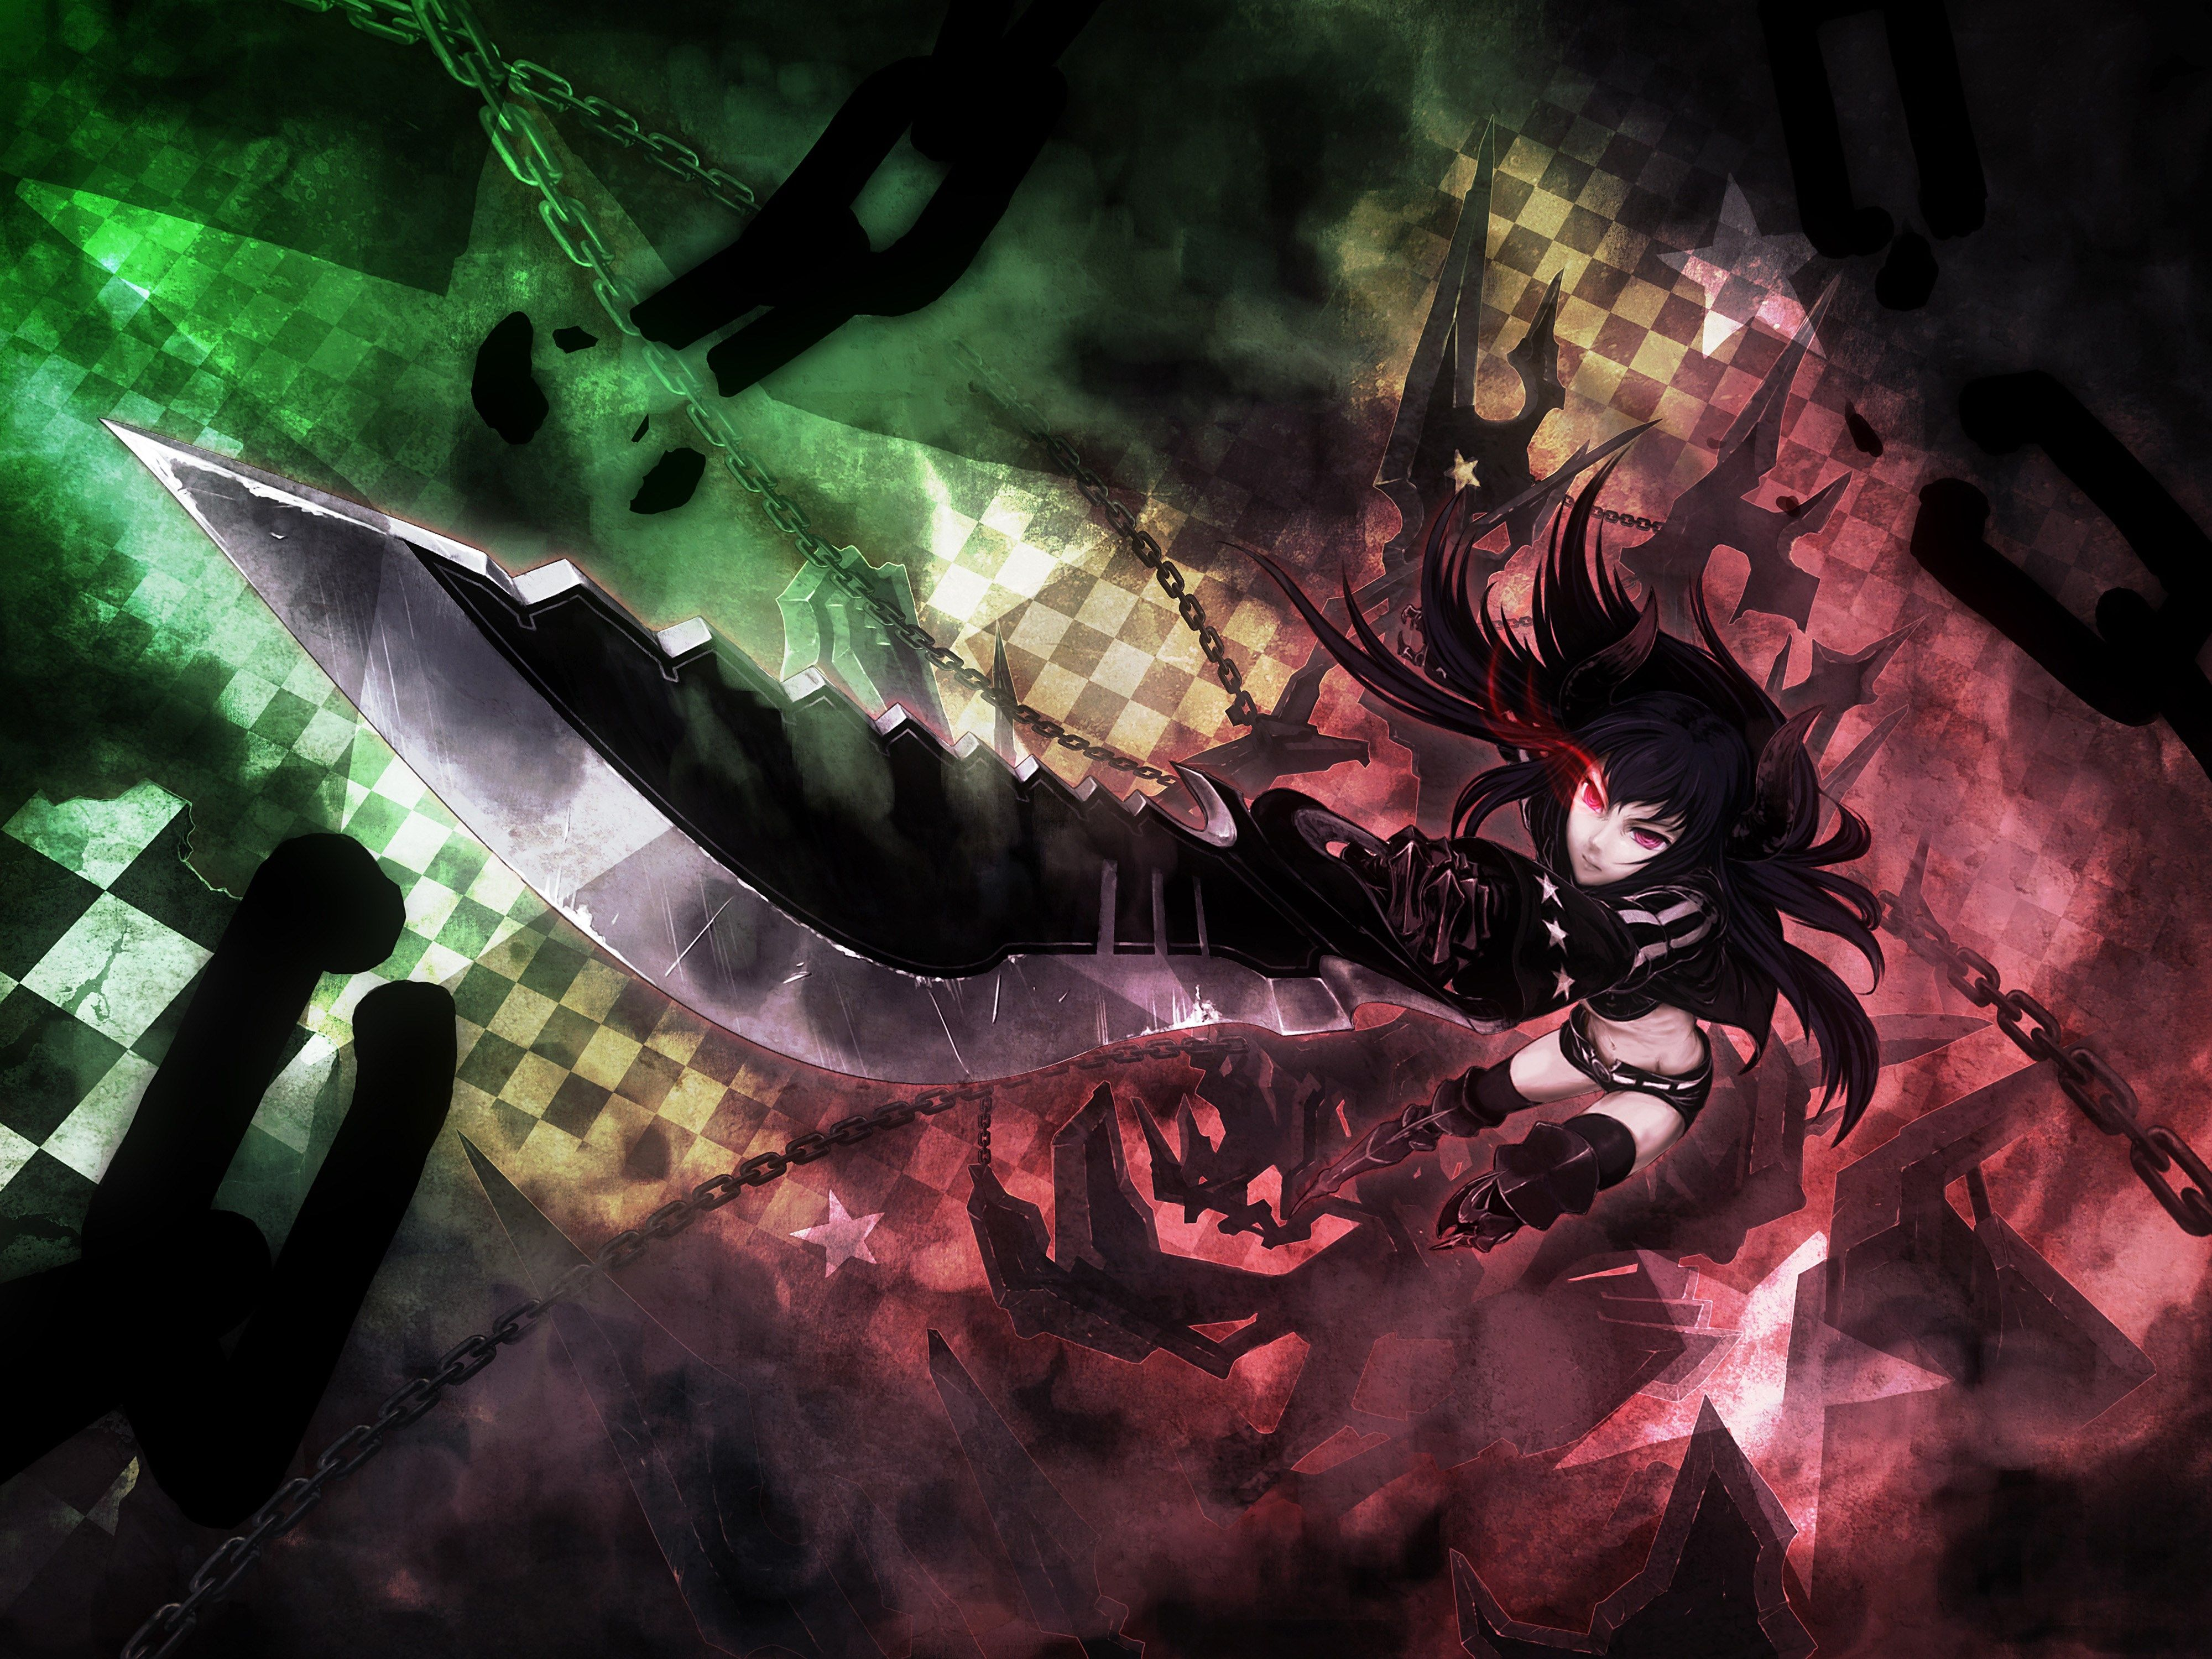 2017-03-16 - black rock shooter wallpaper pack 1080p hd, #1430595